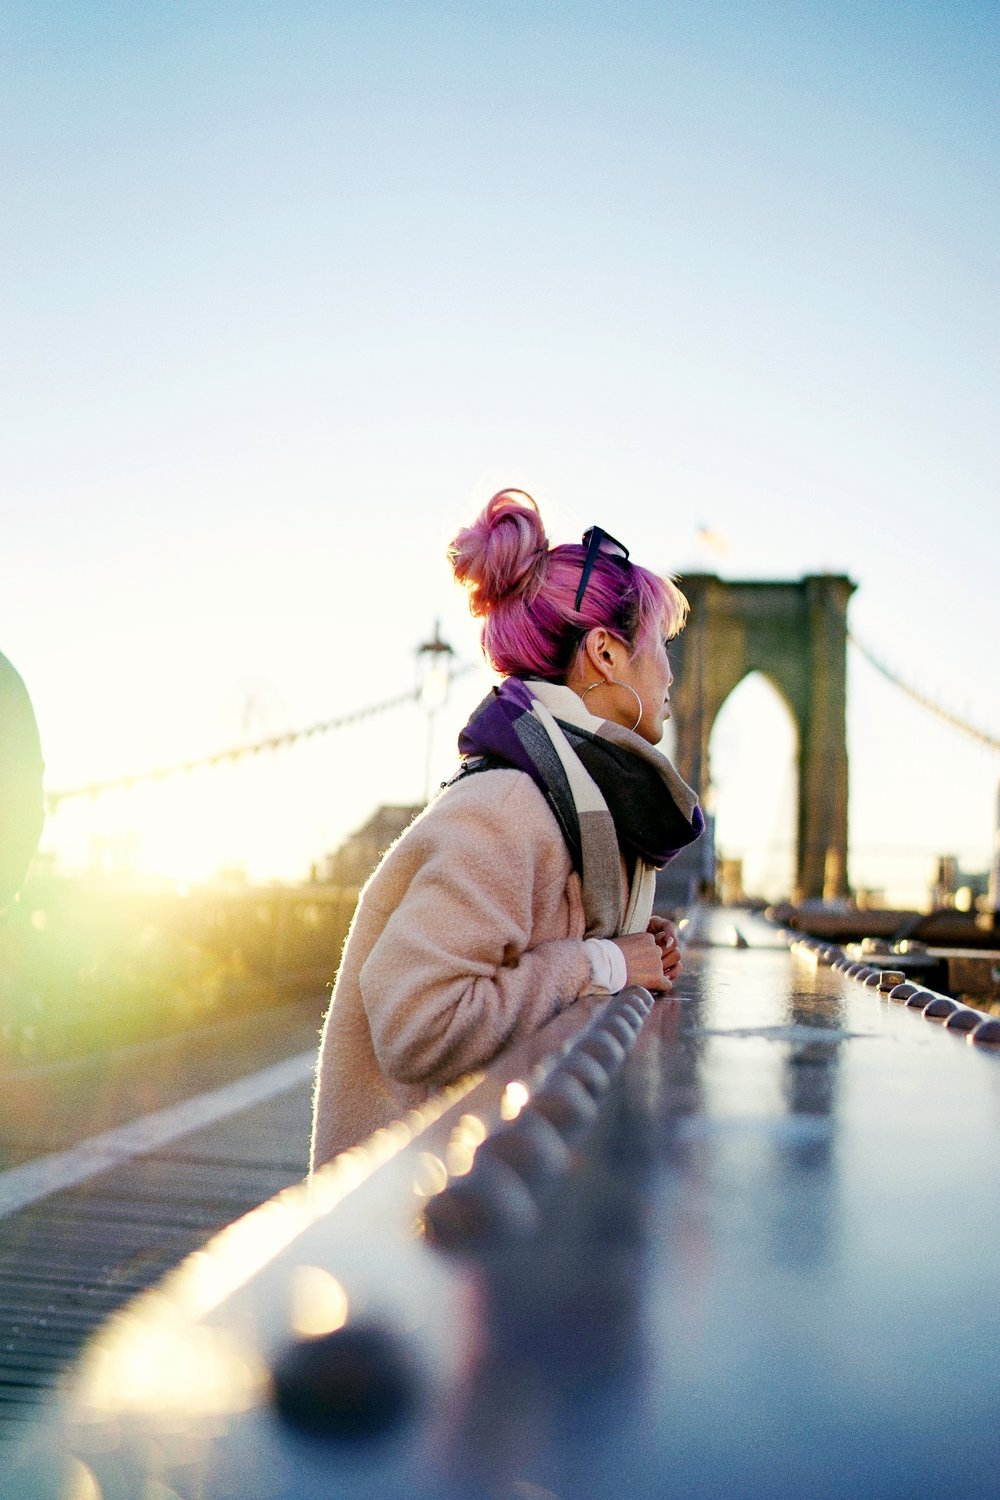 GAP Scarf-Zara pink coat-MOUSSY- frayed hem jeans- CHANEL Lambskin Quilted Medium Boy Flap Black-Adidas Superstar Shoes-Urban Outfitters Sunglasses-Aika's Love Closet-Sealtle fashion style blogger from japan-pink hair-brooklyn bridge-new york-city 4